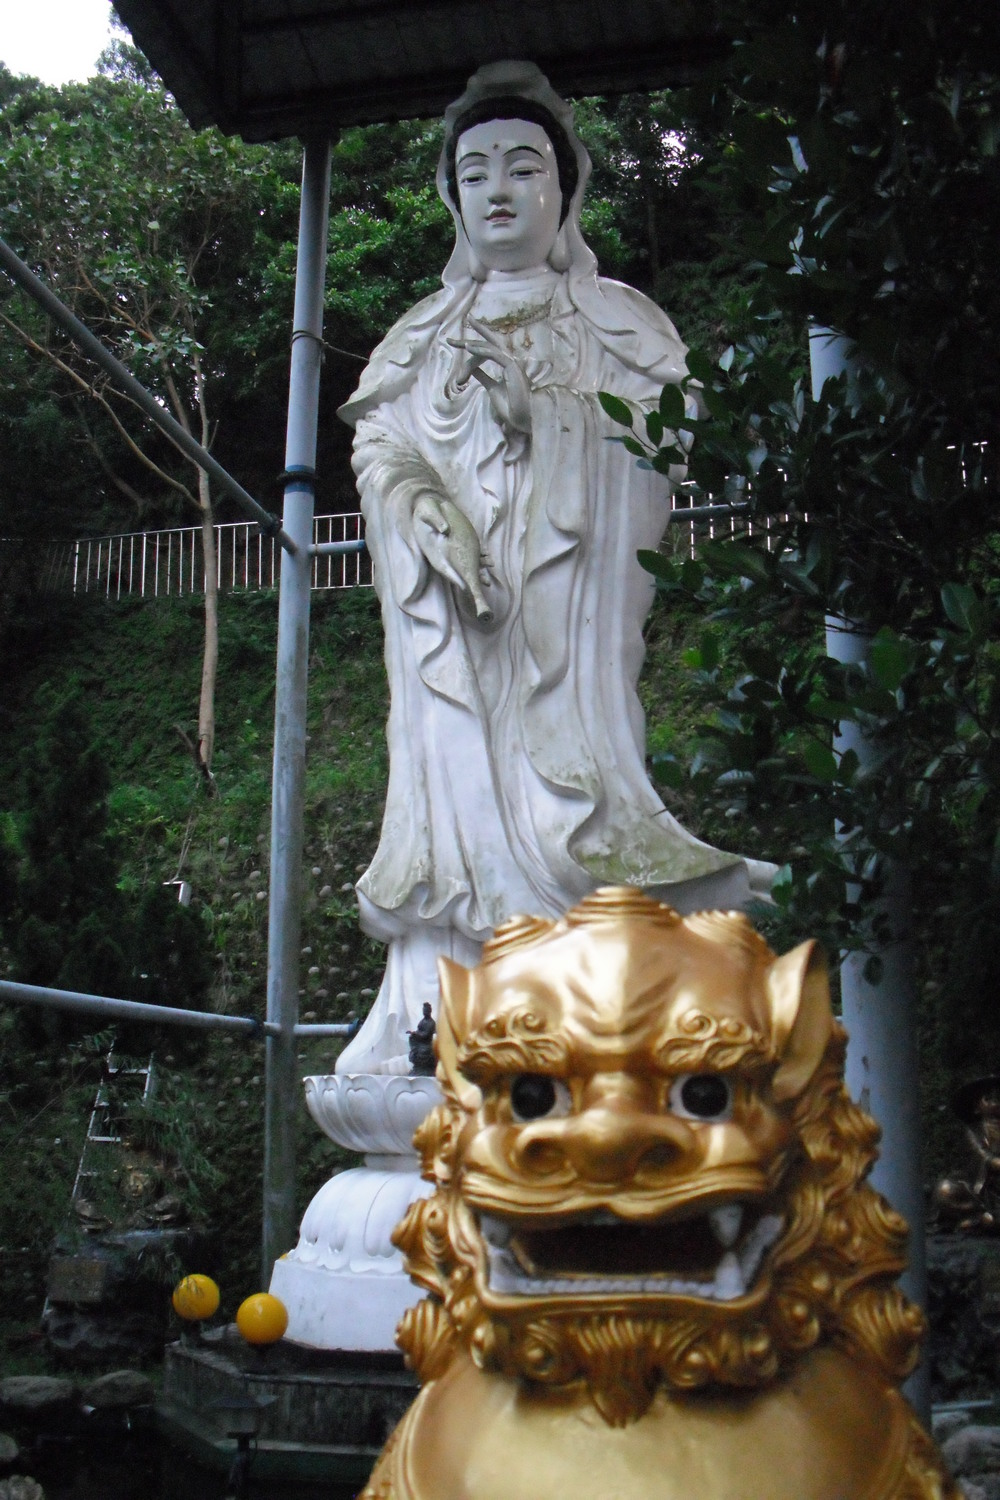 The Guanyin Statue